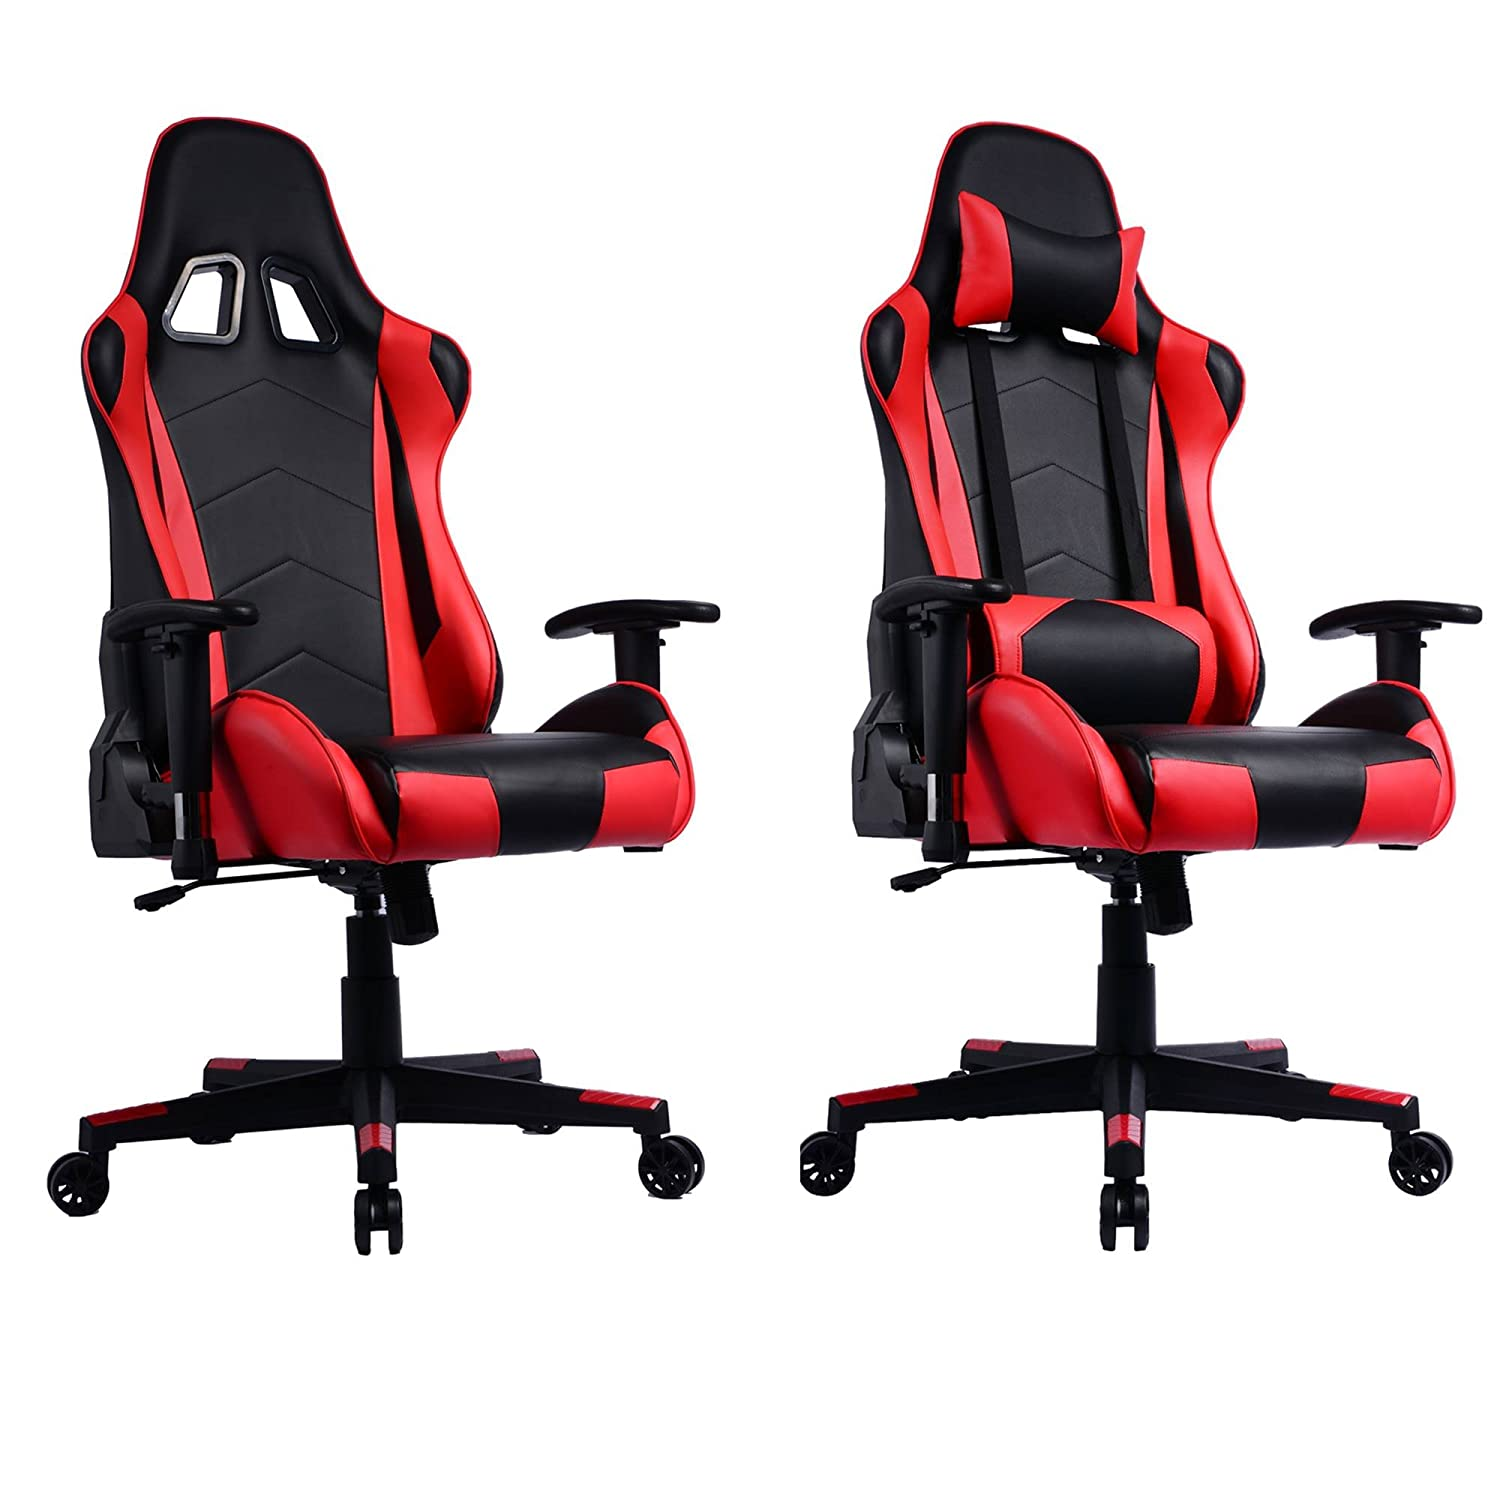 Dossier Products Inclinable; Prime Gamer Selection À Chaise Fauteuil E2D9IH